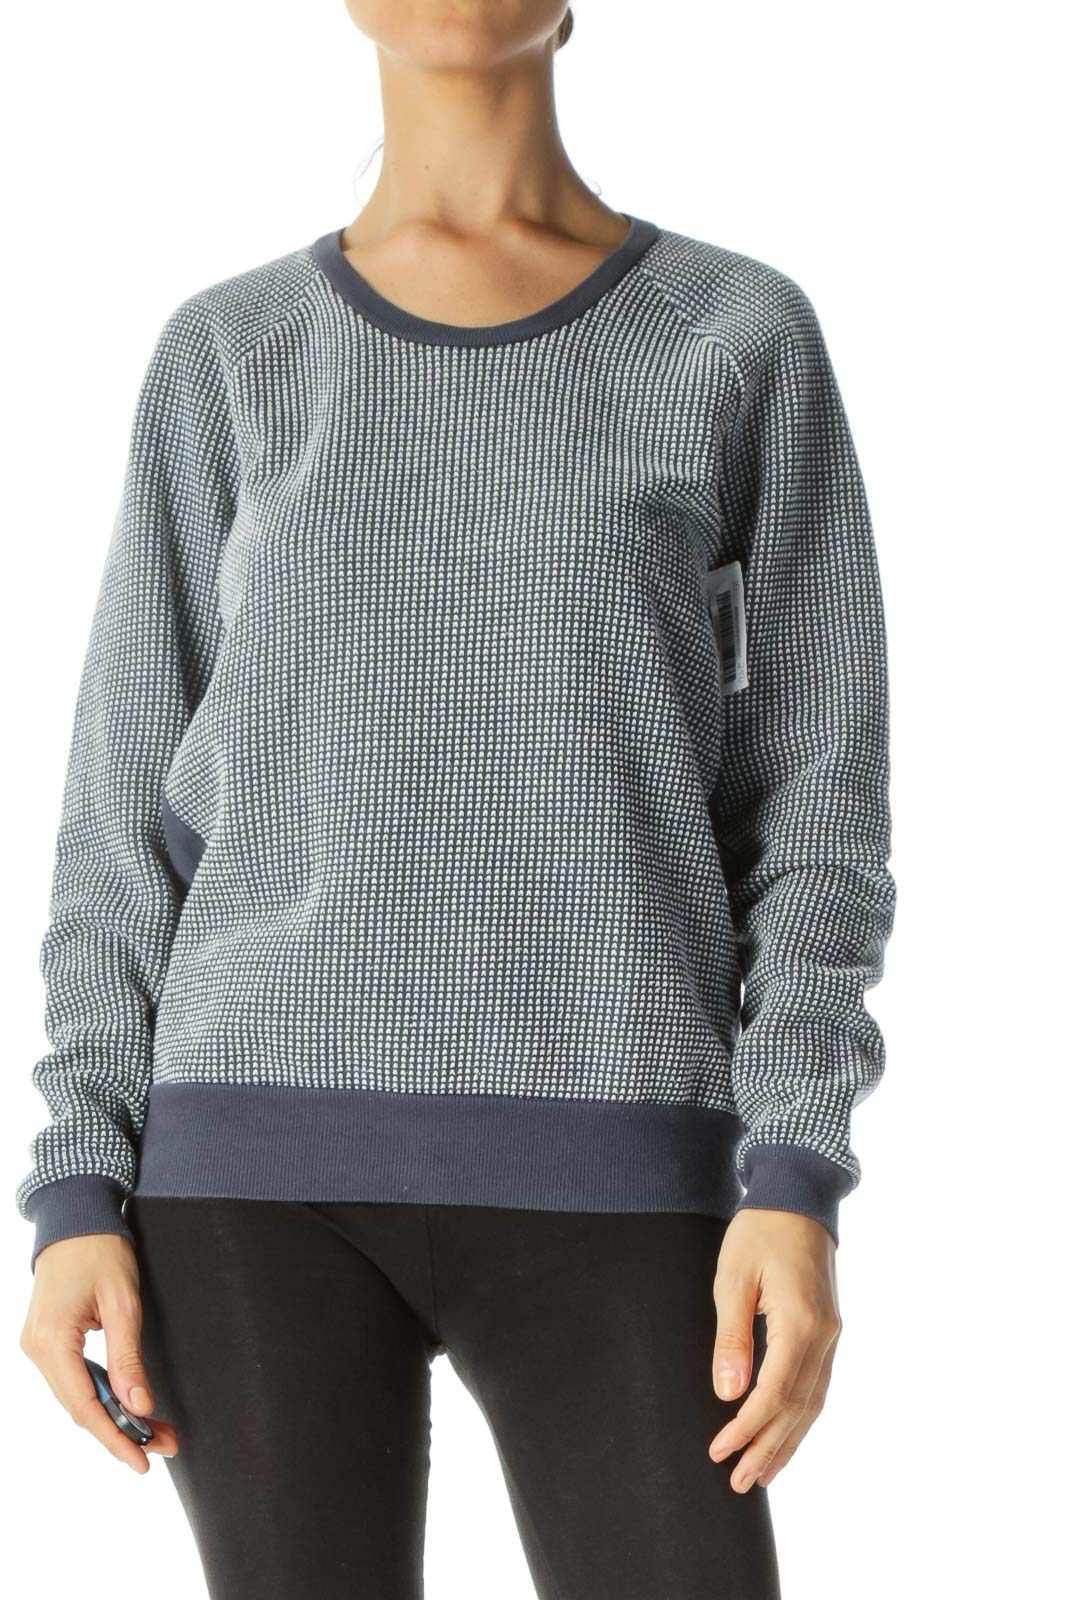 Navy & White Knitted-Print Crew-Neck Sweater